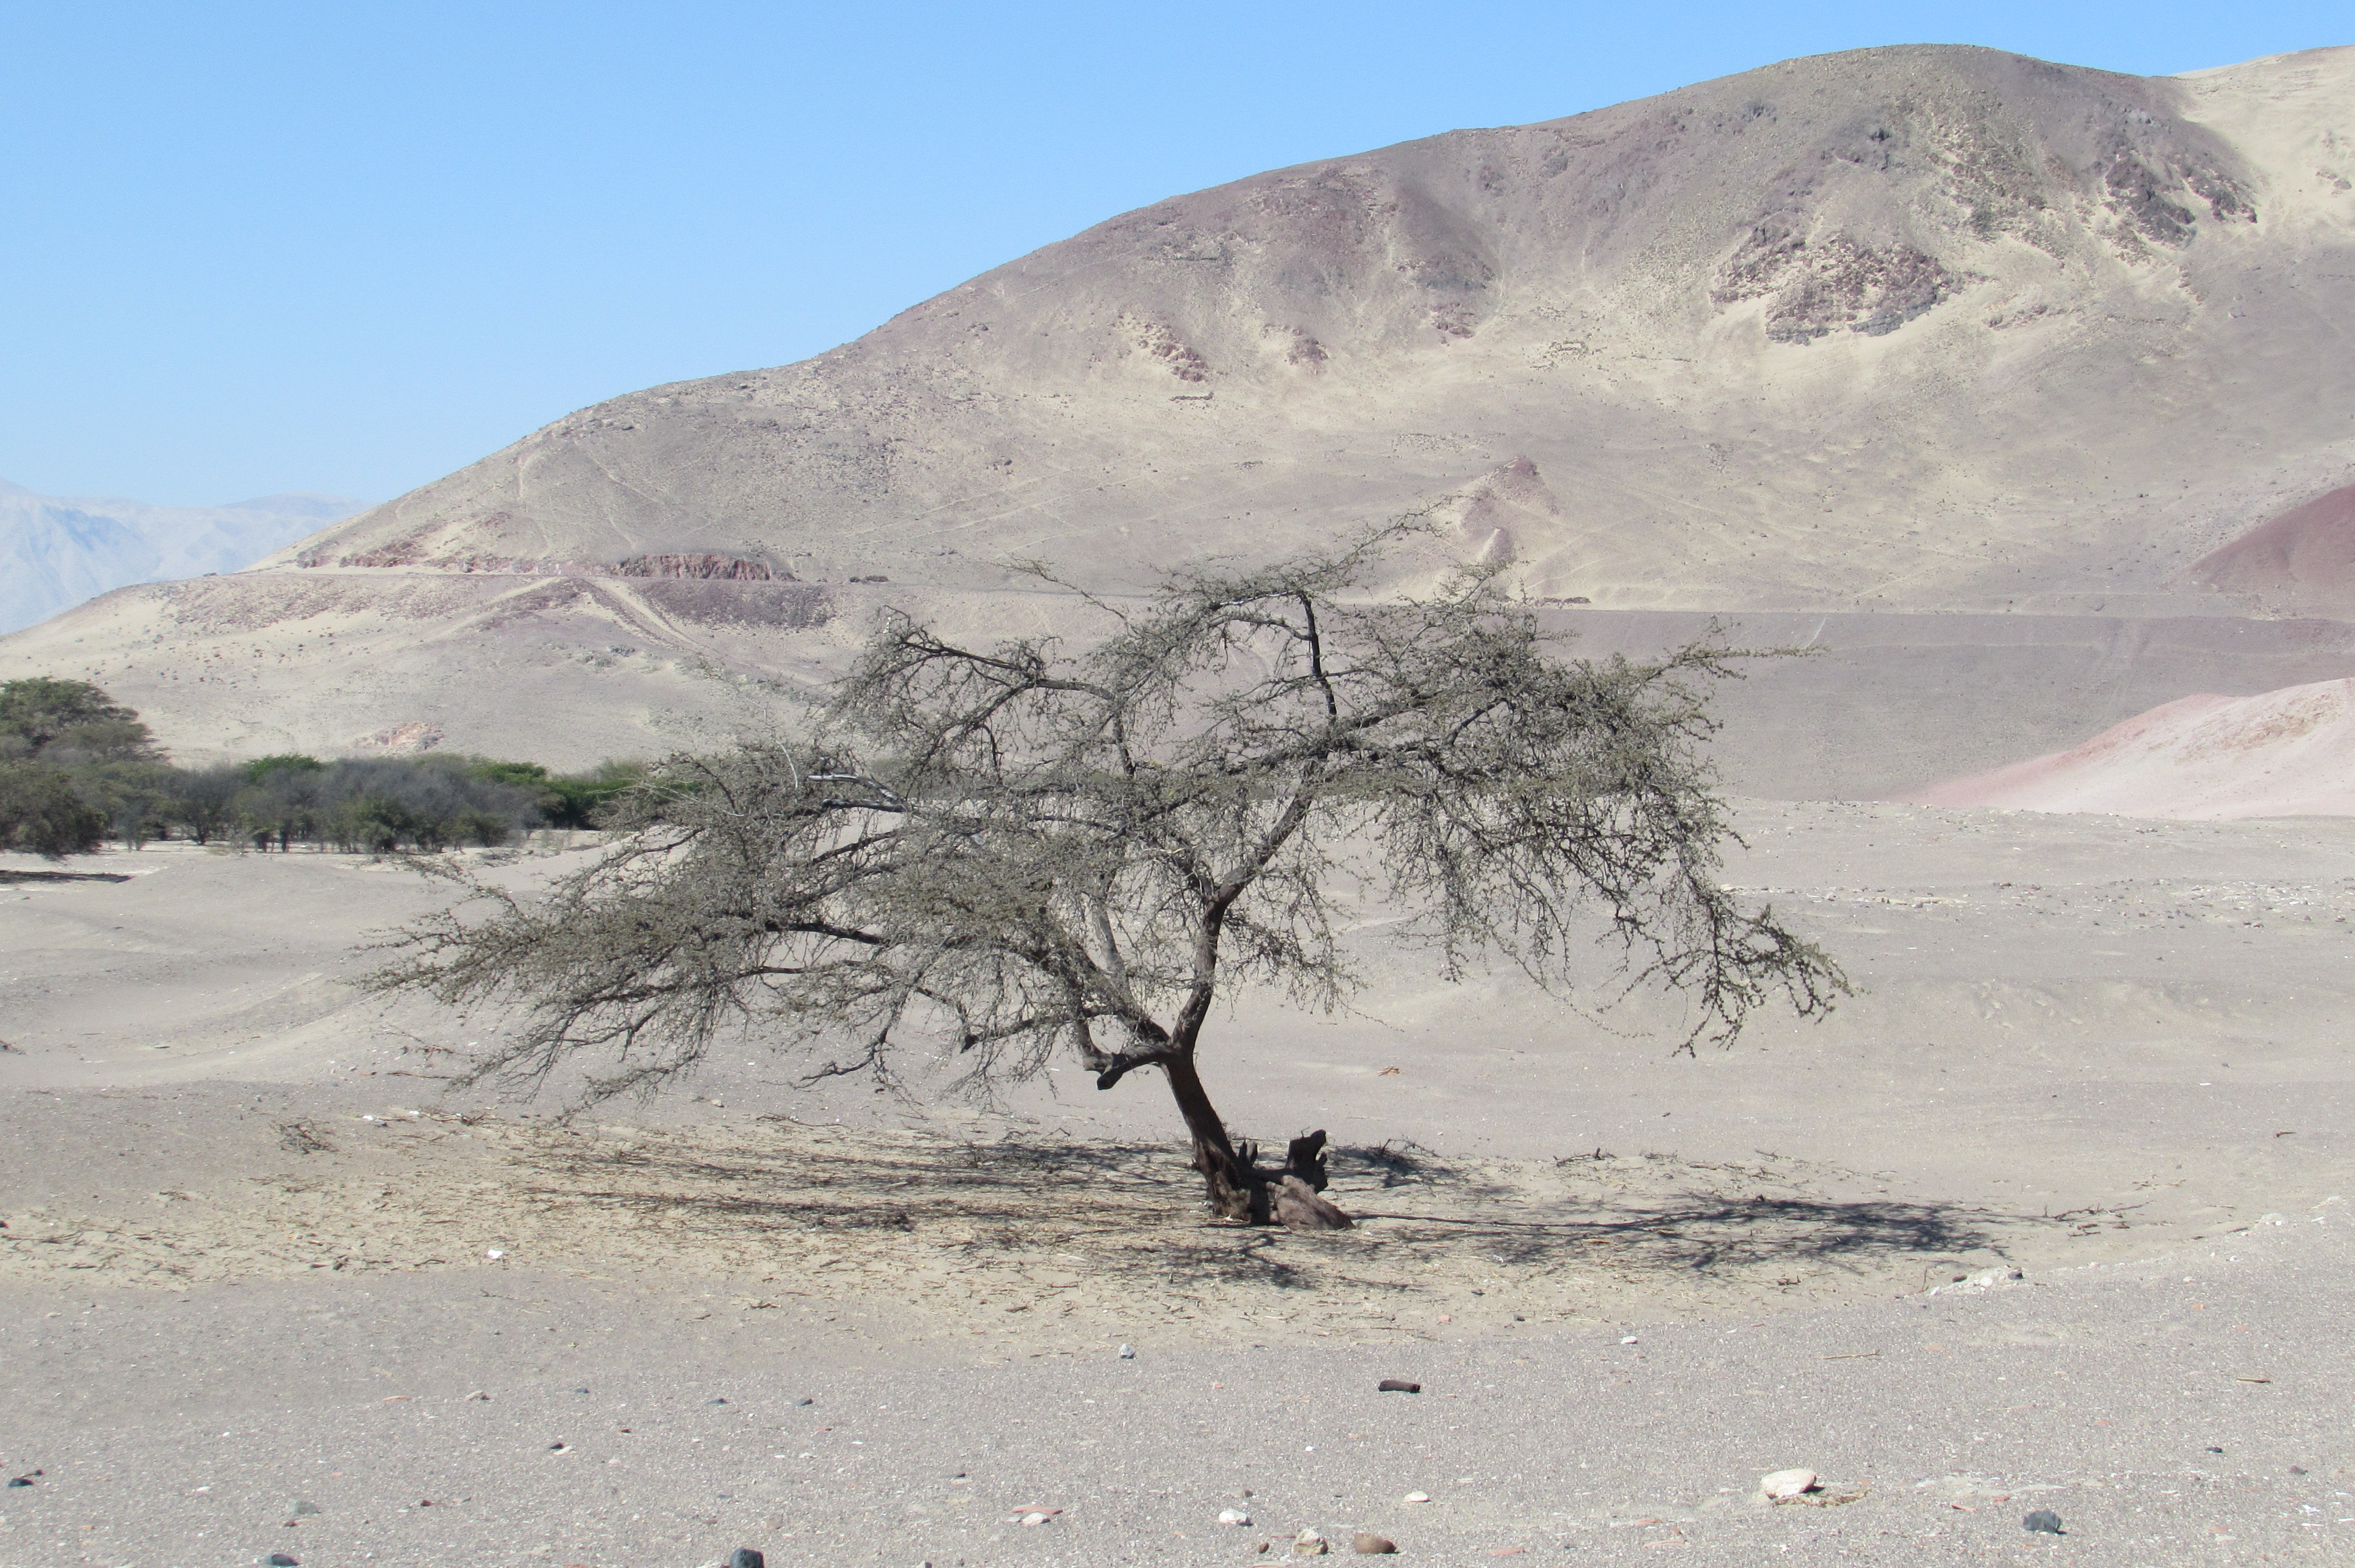 A lonely worker near the Nasca Lines